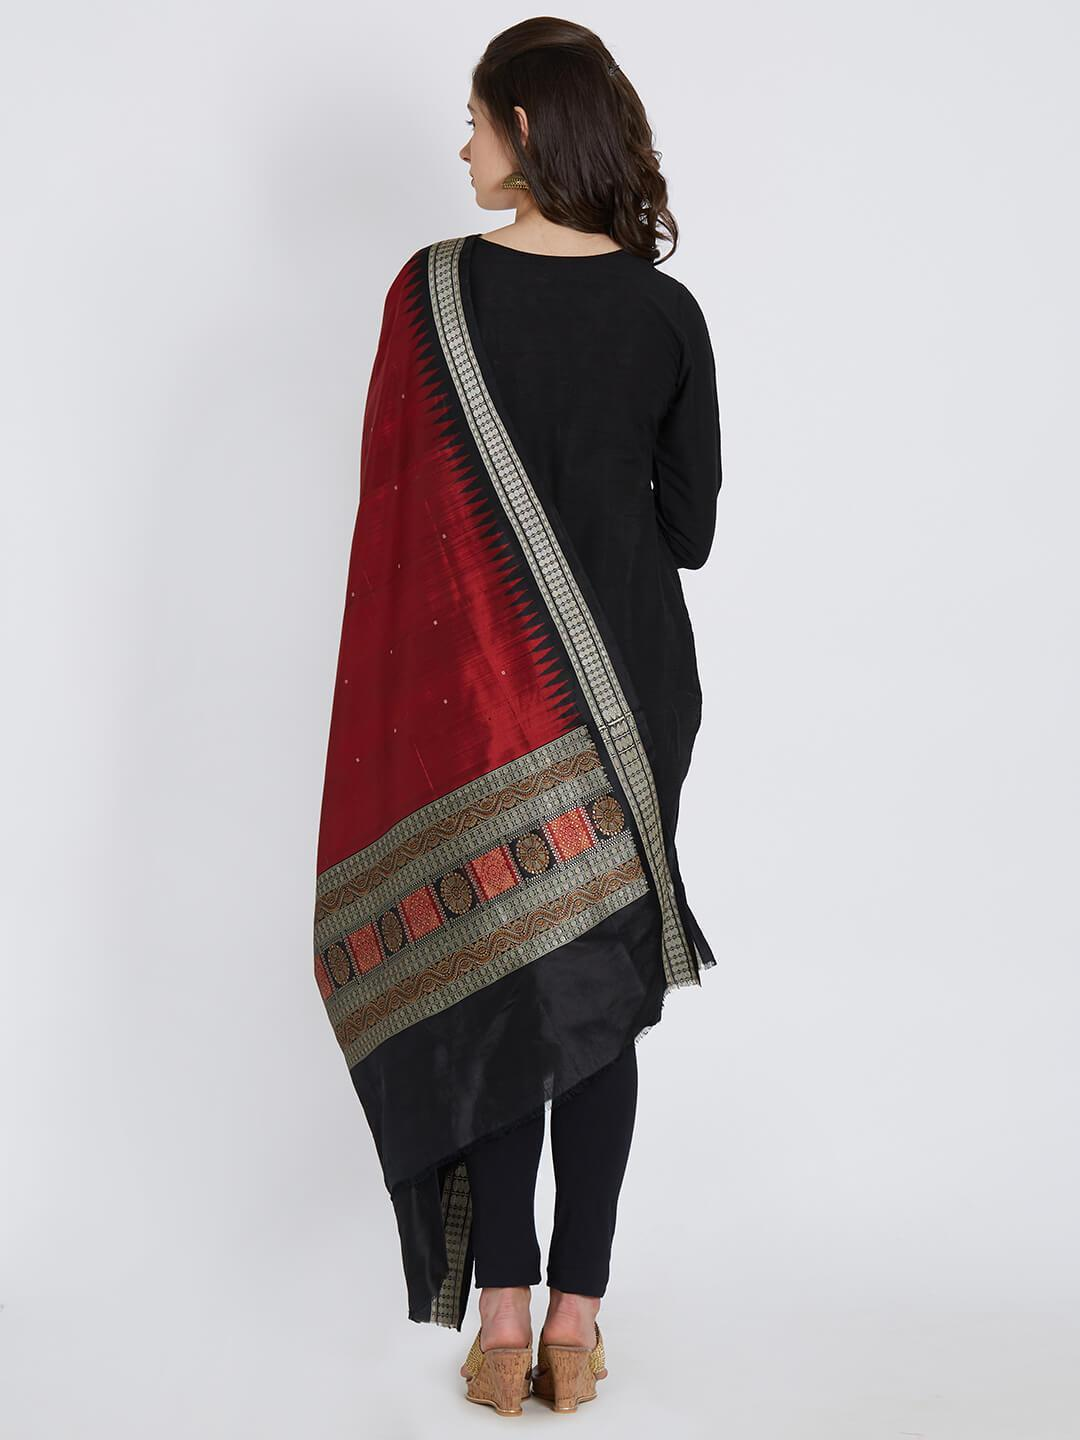 CraftsCollection.in - Maroon Bomkai Silk Dupatta